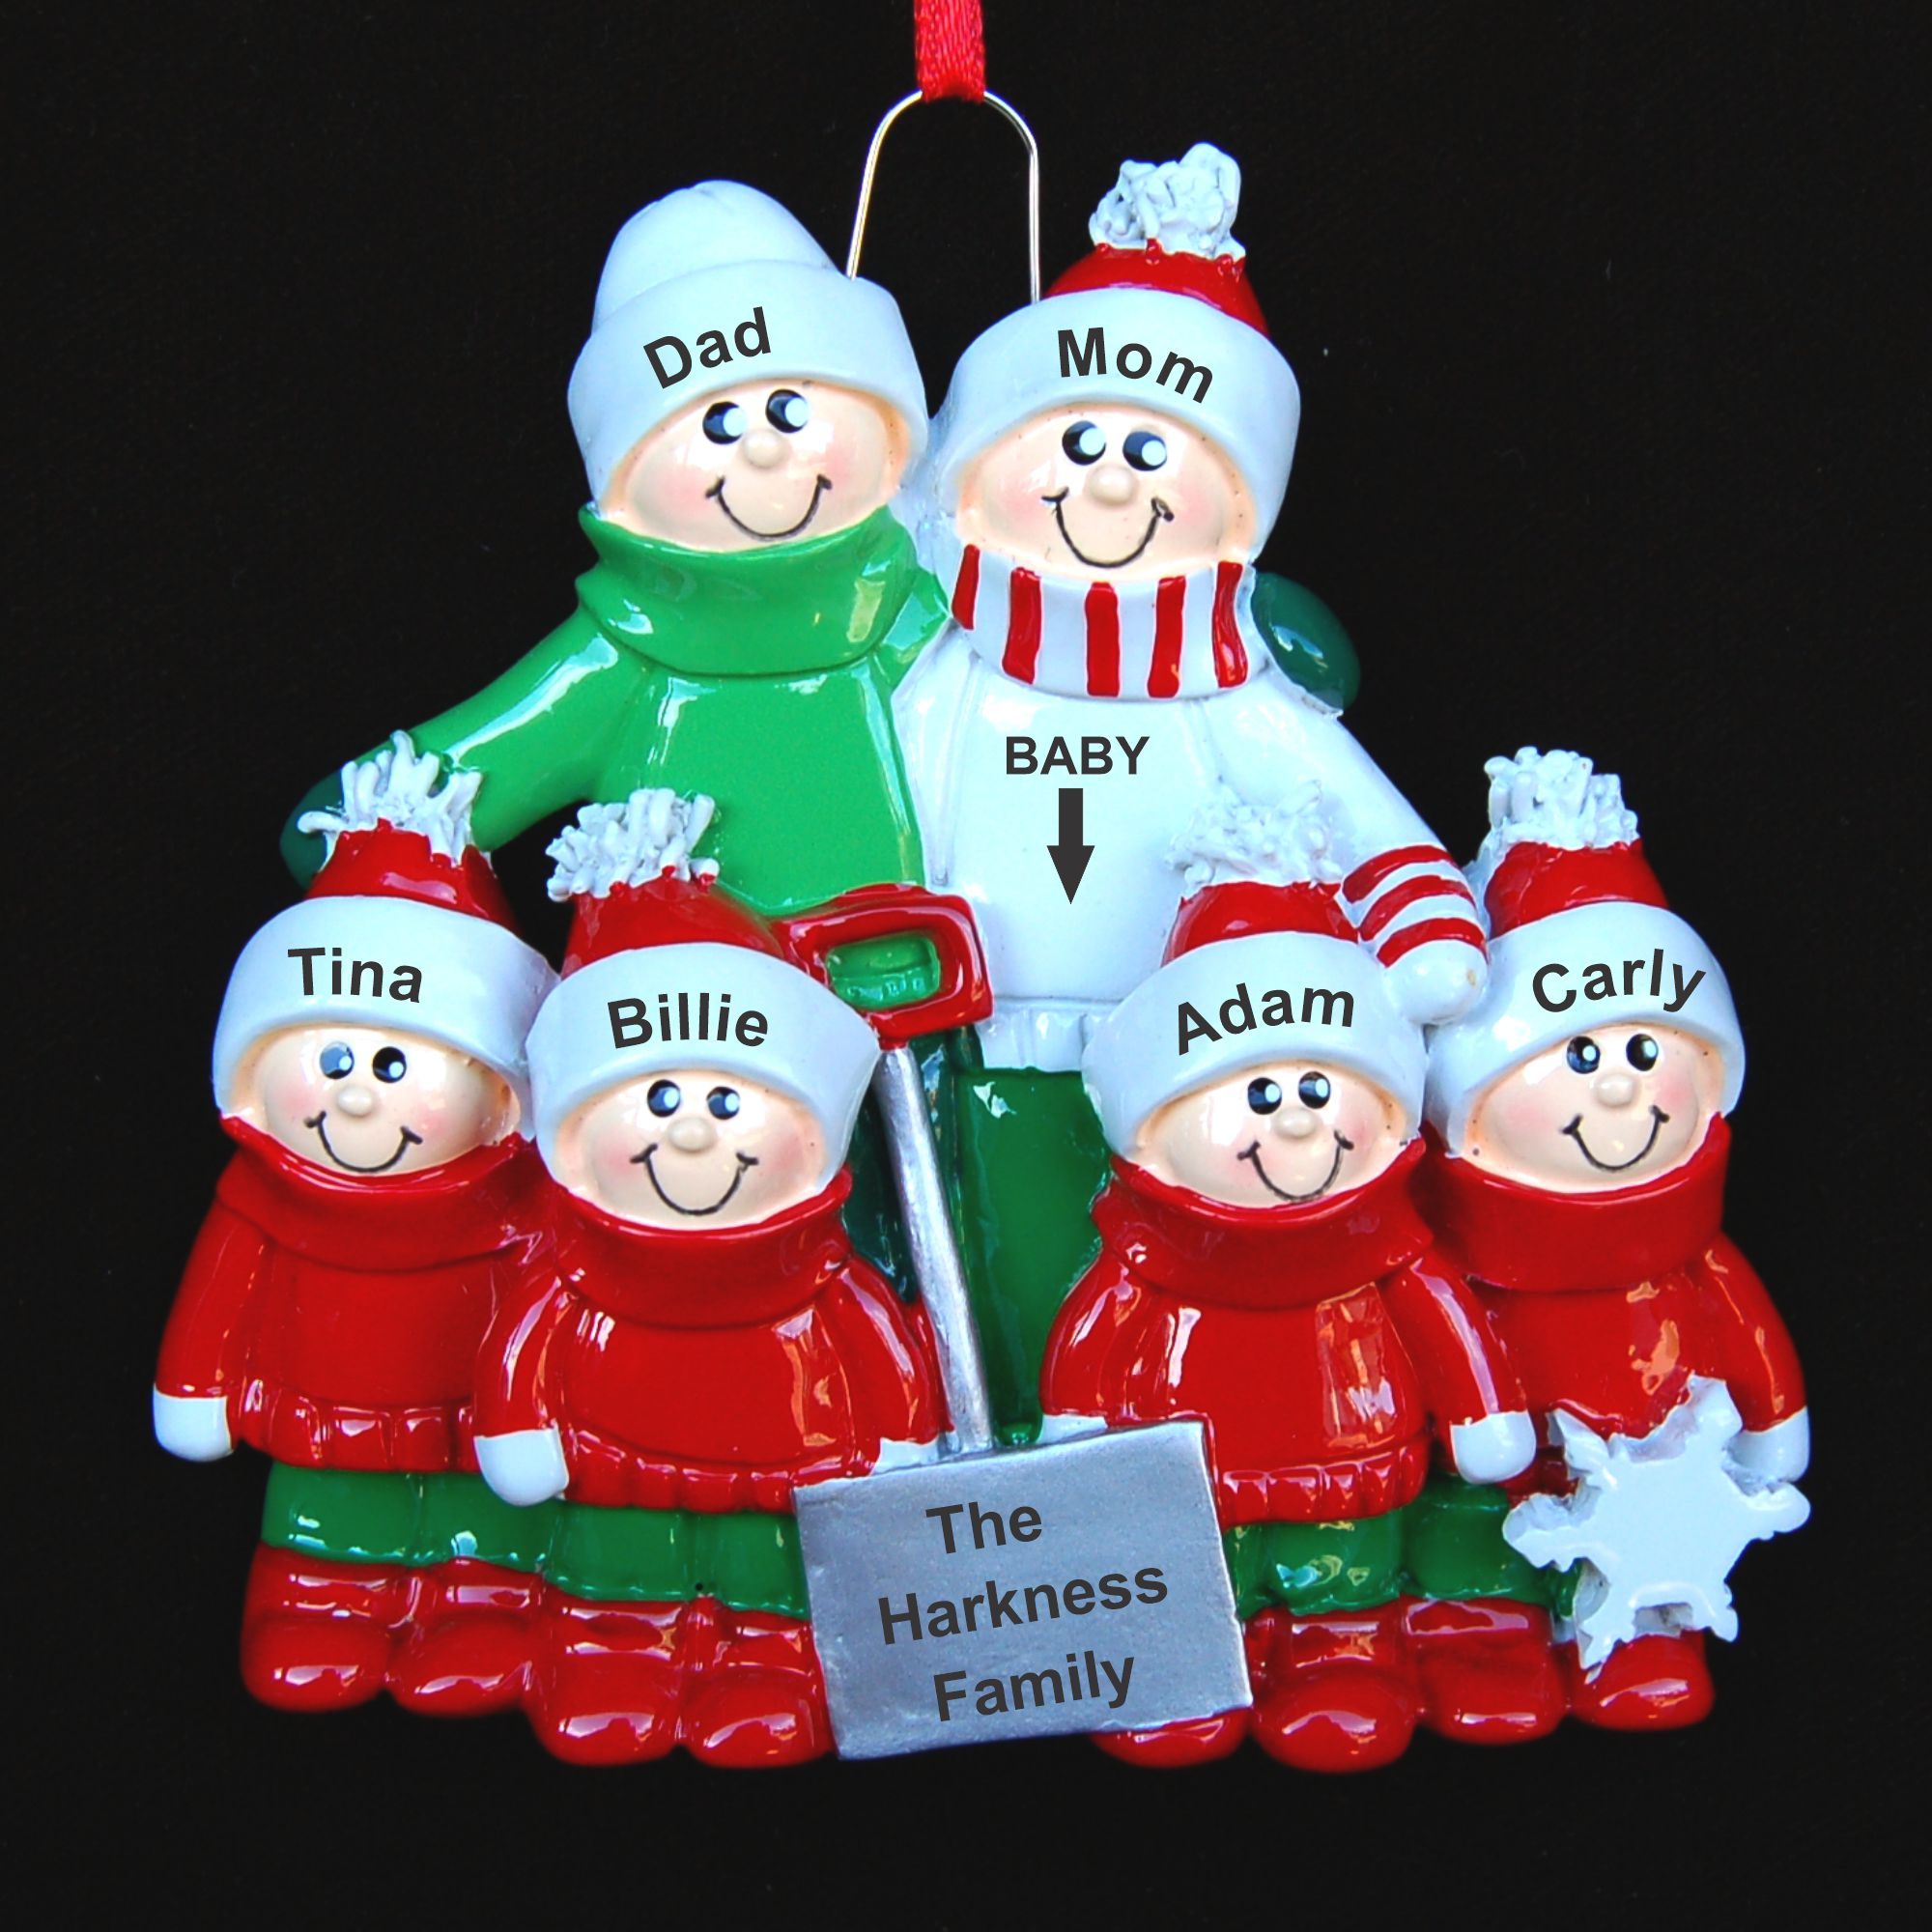 Personalized Fun in the Snow Expecting Christmas Ornament for 6 by Russell Rhodes